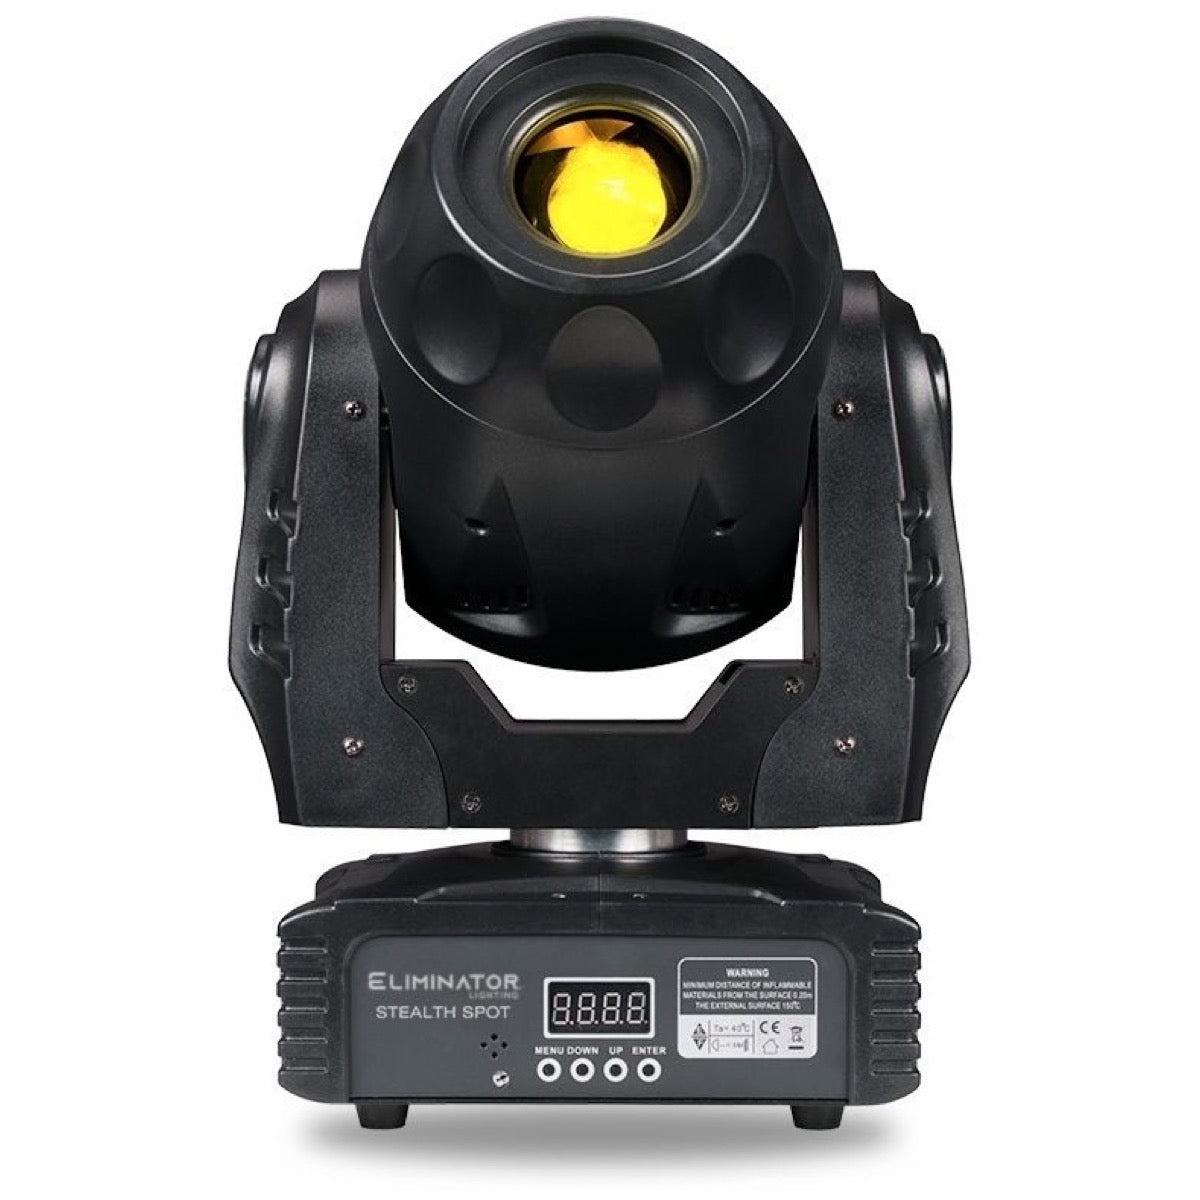 Eliminator Lighting Stealth Spot Light